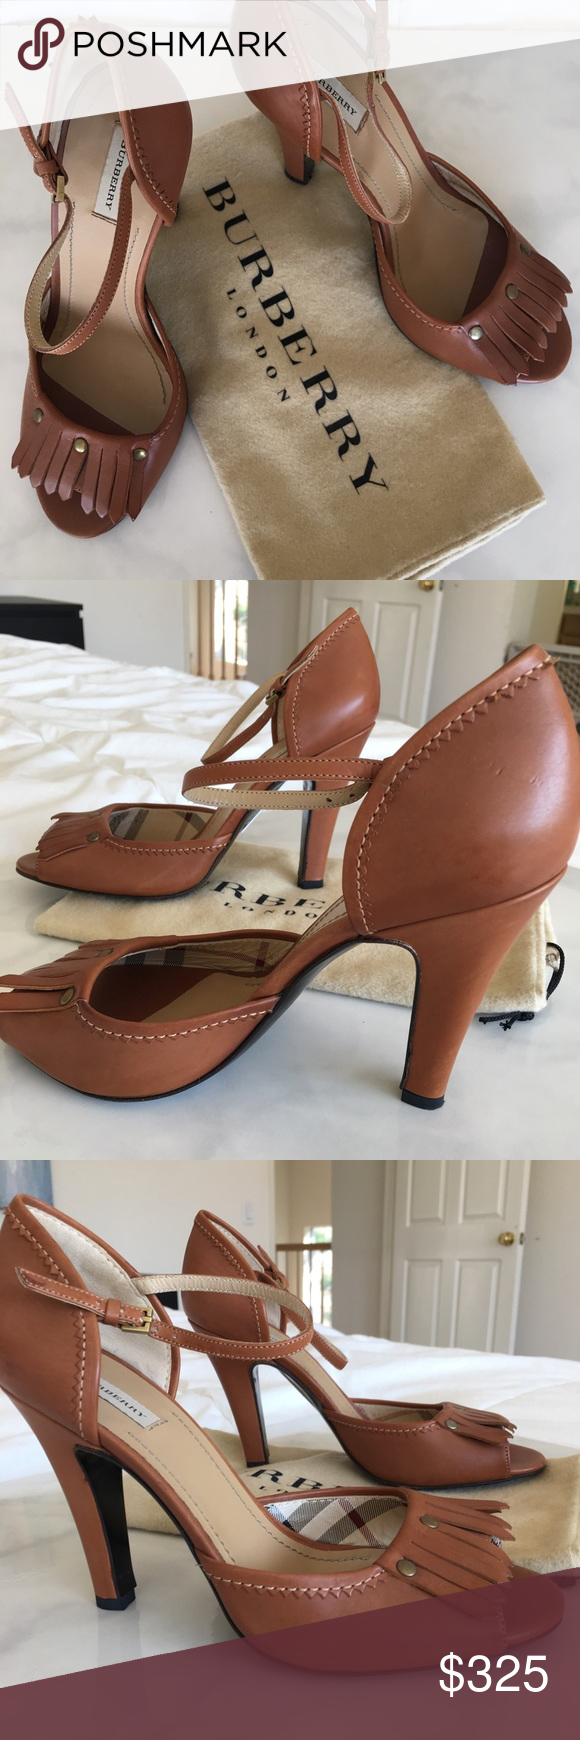 """Burberry Leather Heels Brand new, never been worn Burberry Tan Leather Heels. These heels were purchased from Neiman Marcus for $600. The outside of the heel measures 4"""", the inner part of heel measures 3"""". Leather is in excellent condition w/ beautiful brass detailing and its signature plaid on the inside of the shoe. Shoe soles show no signs of wear w/ bar code still attached. Burberry Shoes Heels"""